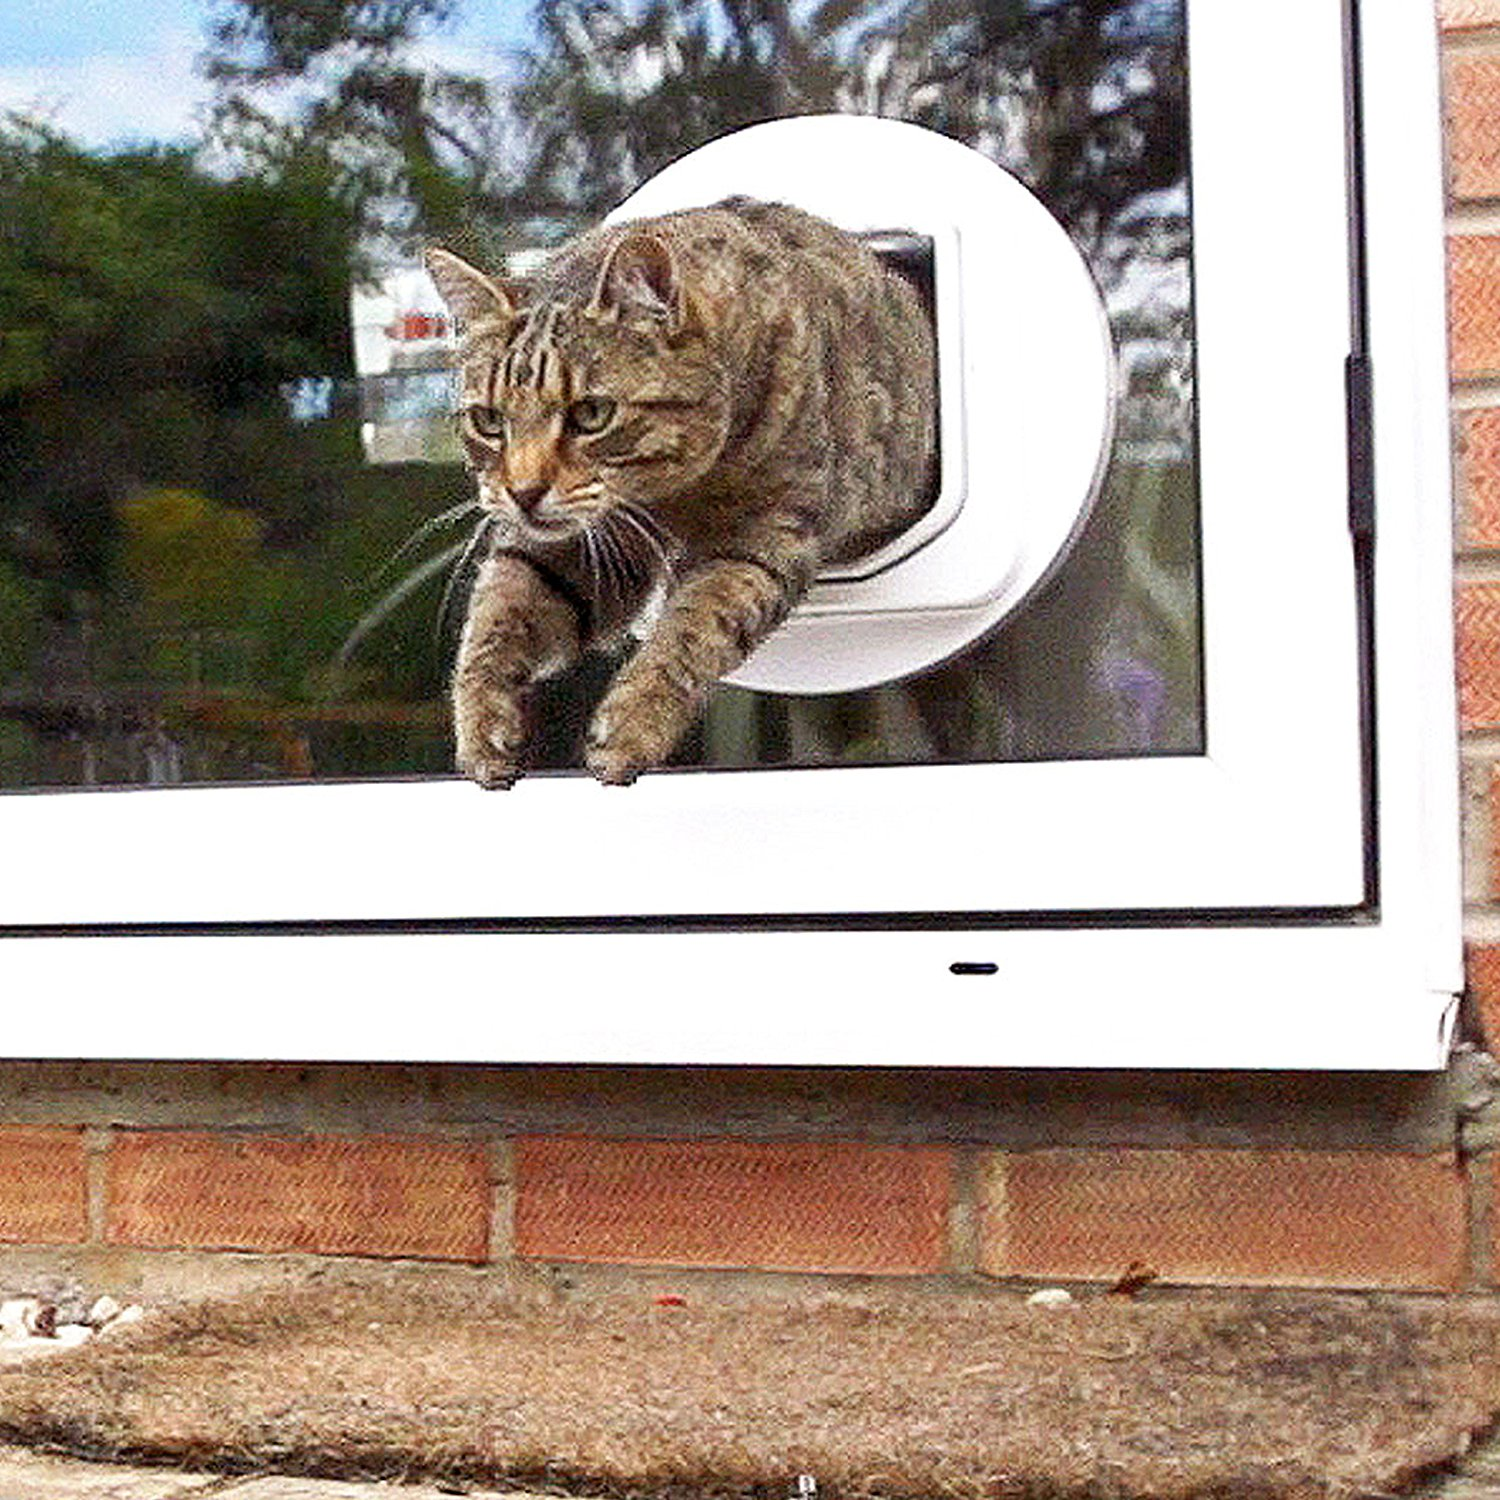 Delicieux Automatic Cat Doors Are Useful Gimmicks If You Want Your Cat To Become An  Indoor And/or Outdoor Pet. It Is Scientifically Proven That When Cats Have  The ...